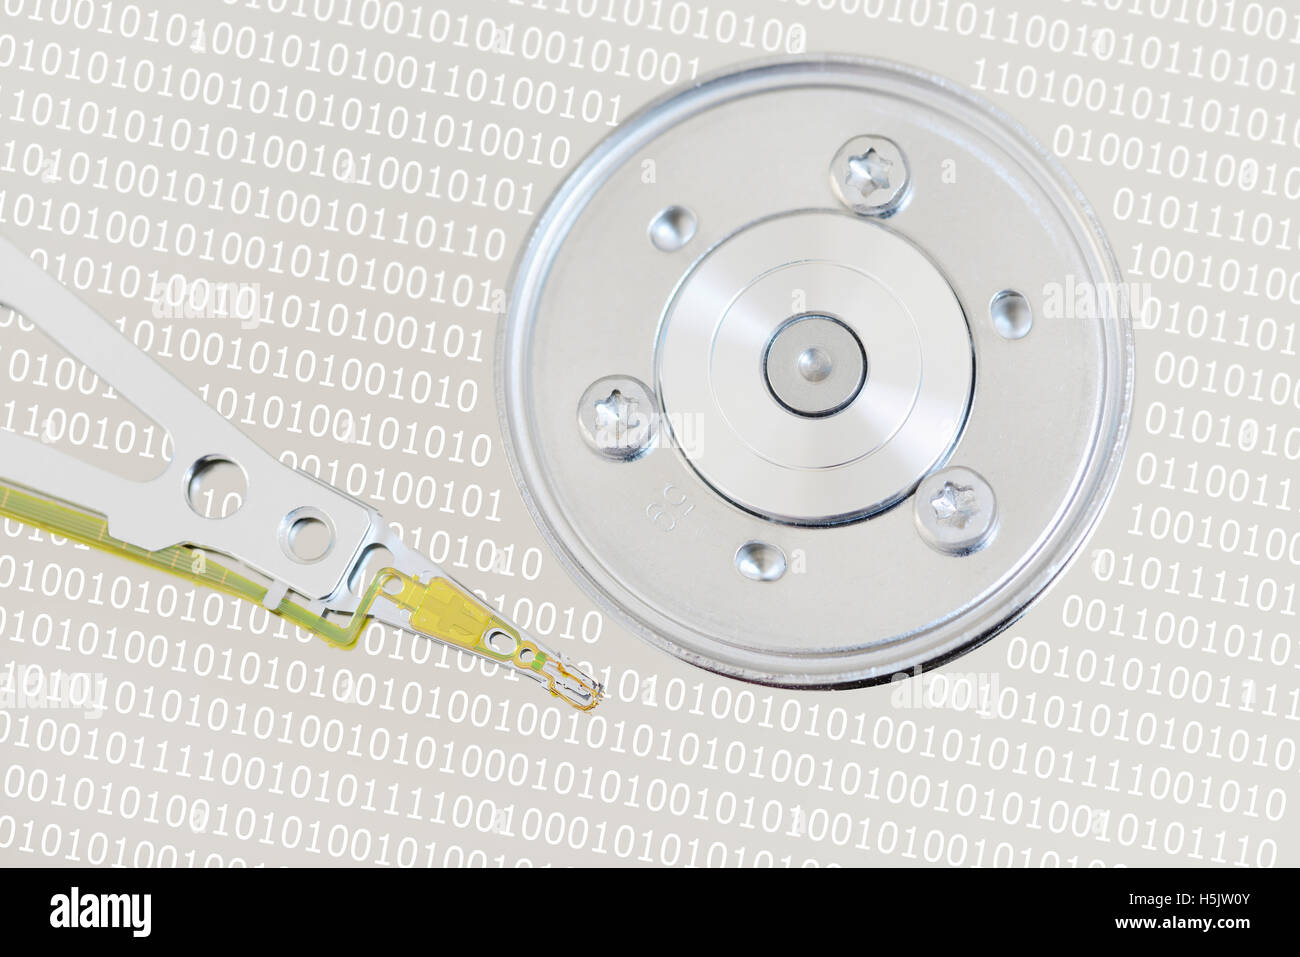 Computer Hard Disk Drive with Binary numbers Stock Photo